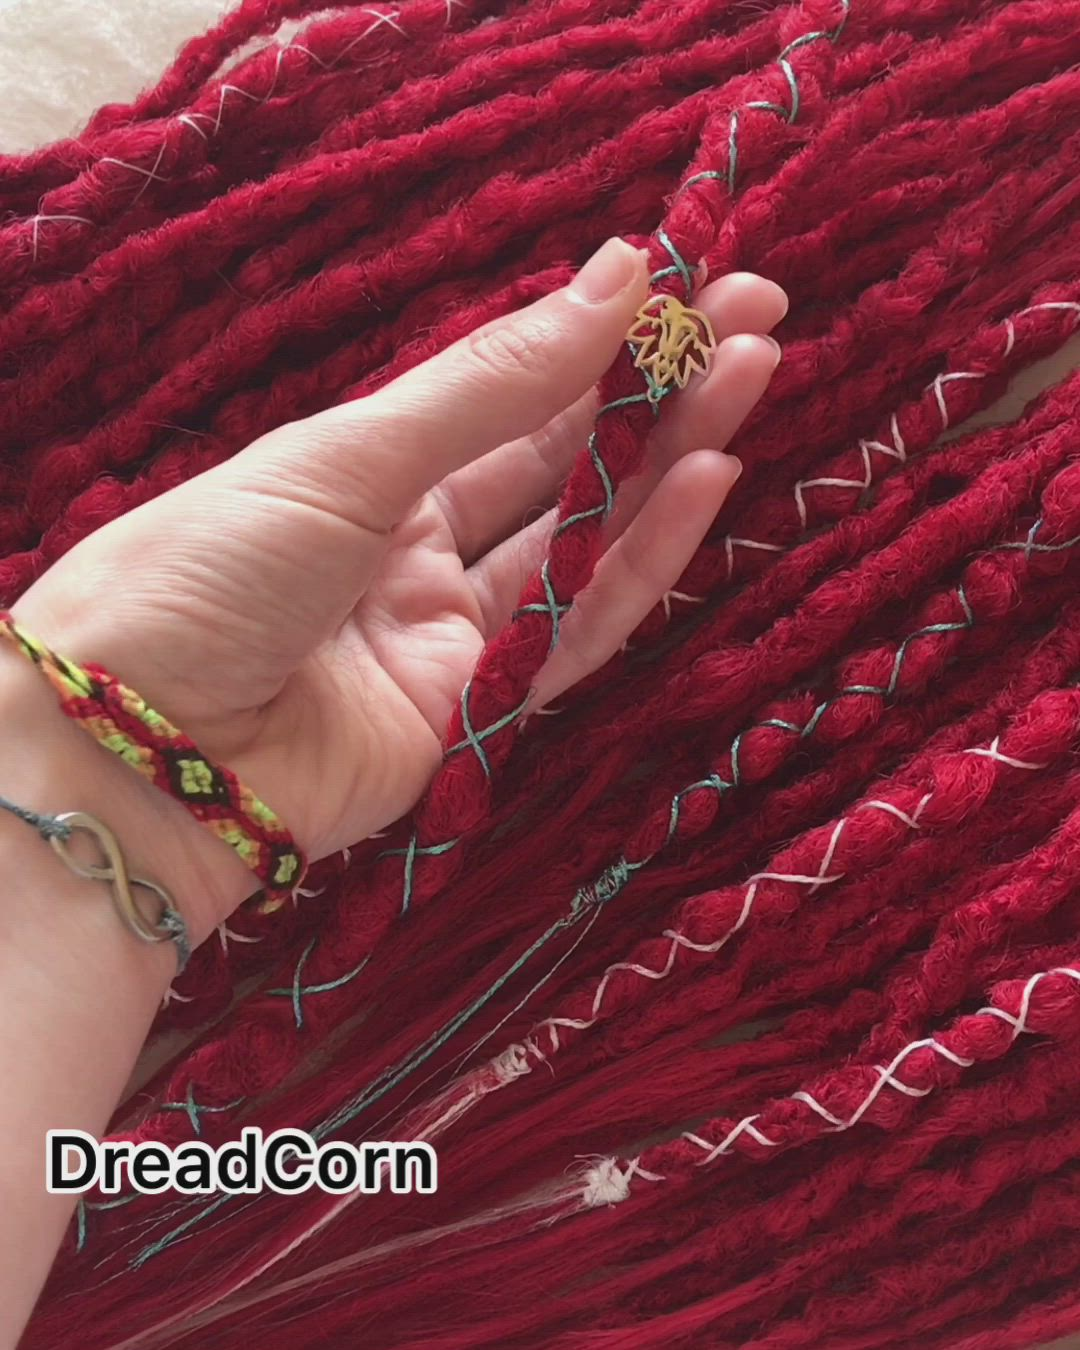 Red Synthetic Dreads Cherry Crochet Dreads Double Ended Dread Etsy Video Video In 2020 Red Synthetic Dreads Synthetic Dreads Crochet Dreads